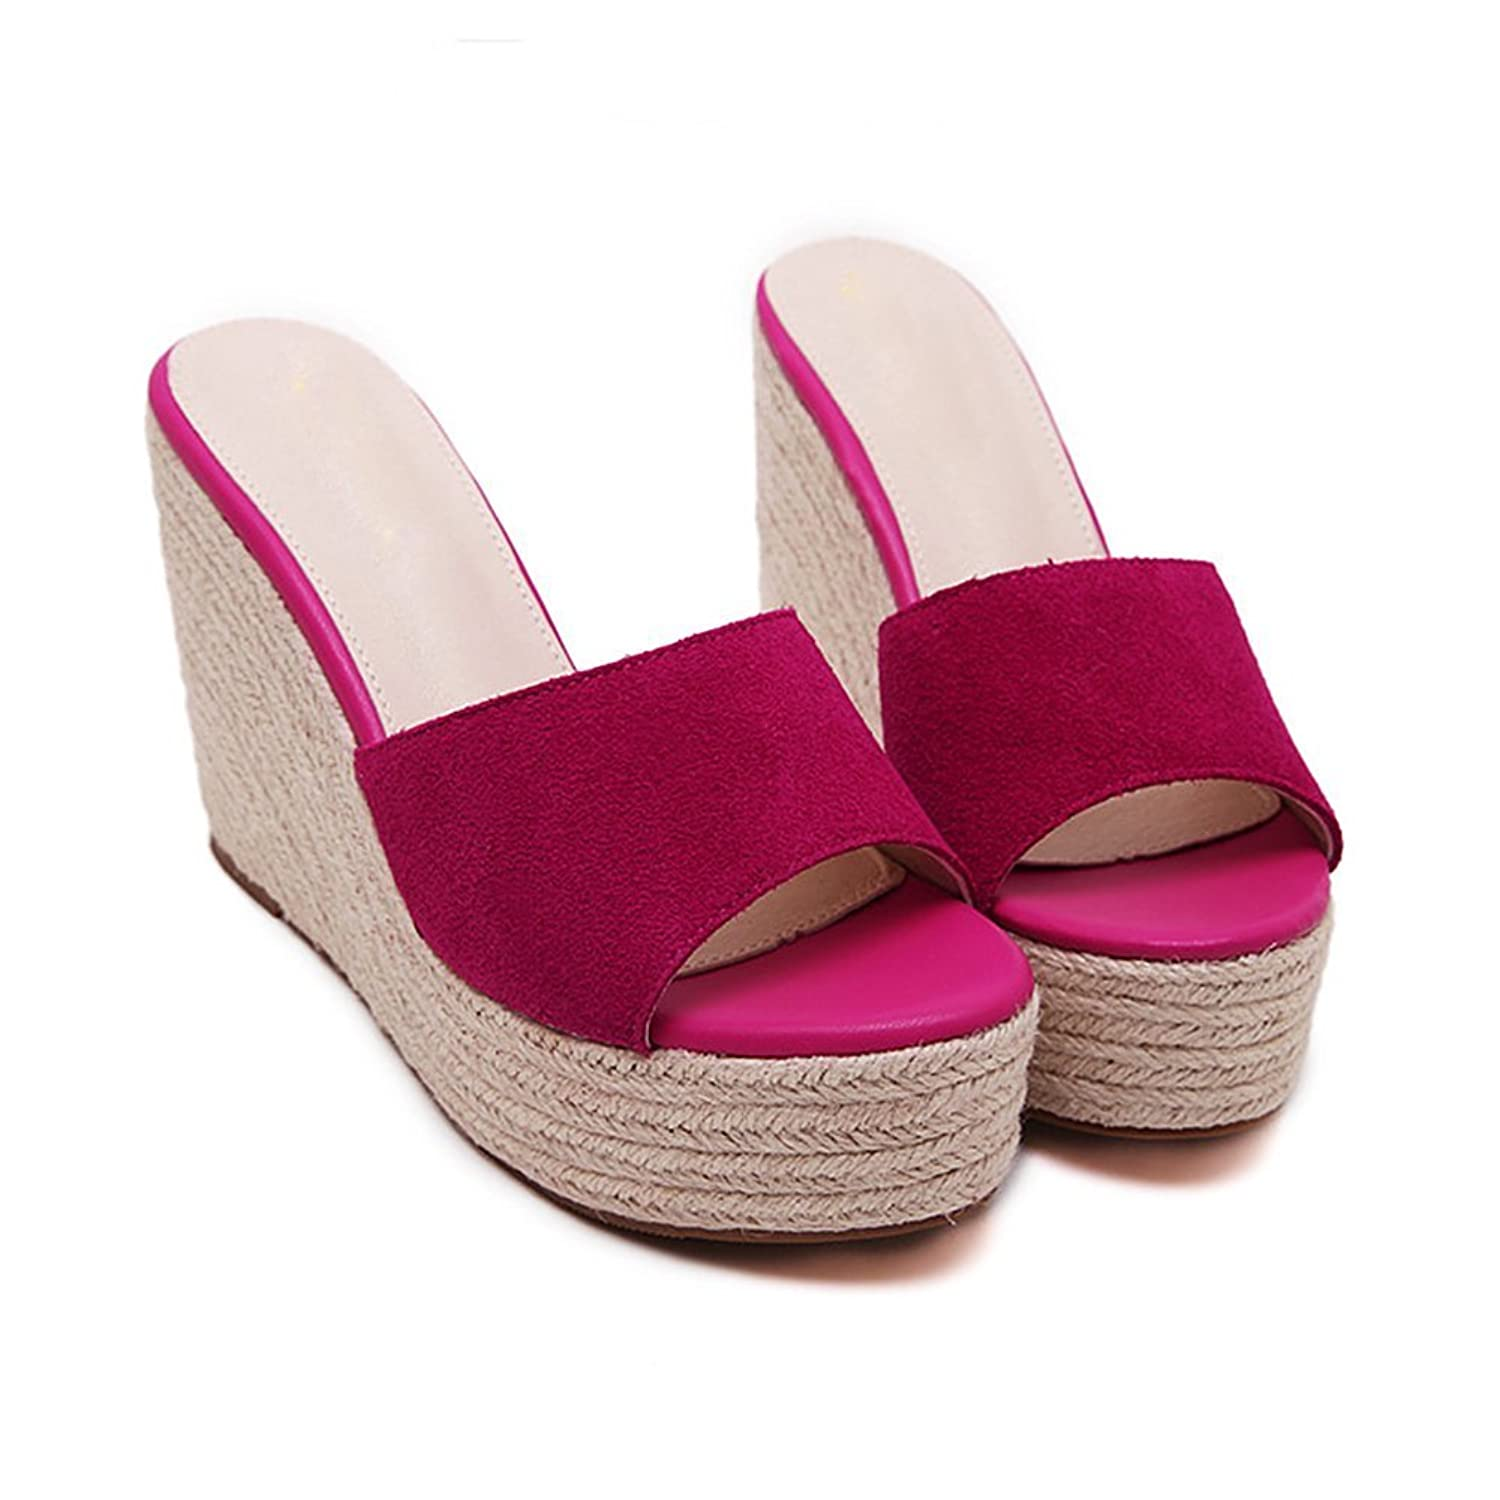 True Meaning New design Women's Suede Peep Toe Open Back